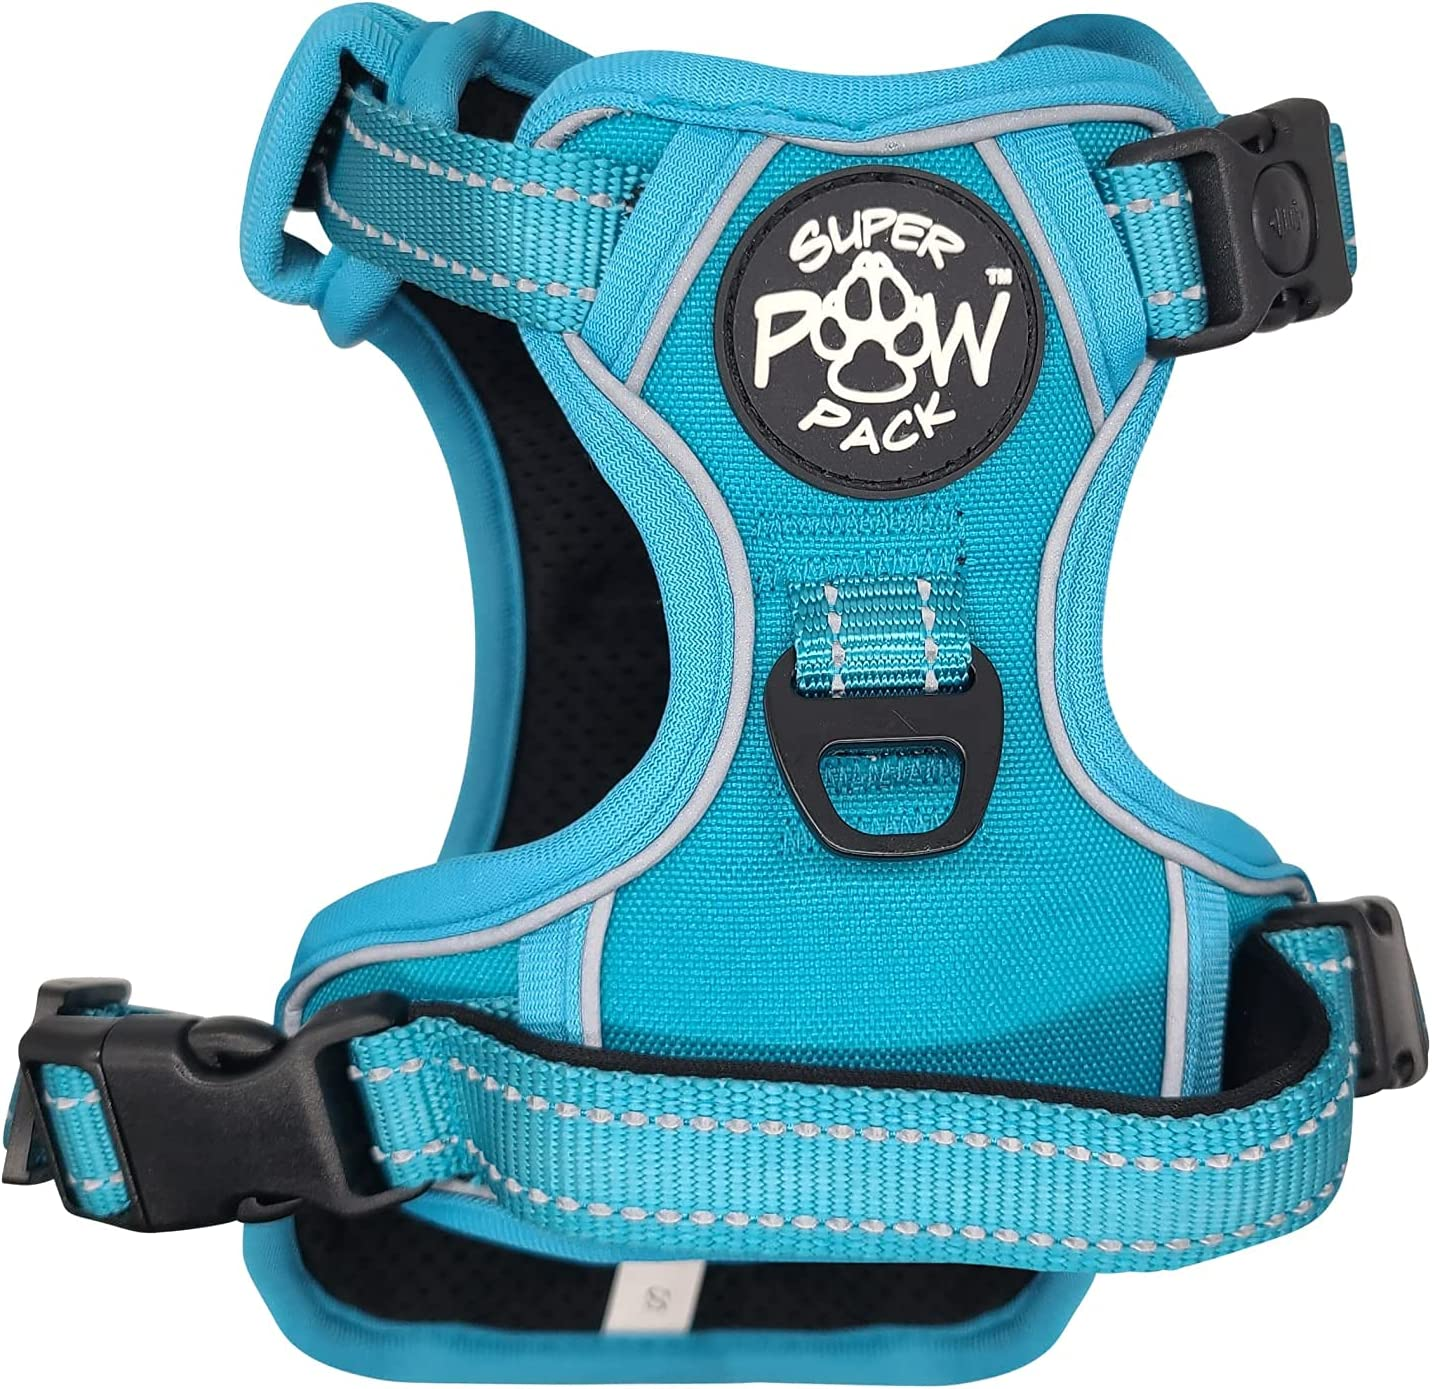 Super Paw Pack Adventure Series Dog Harness In a popularity Bahama Blue XXL Brand new